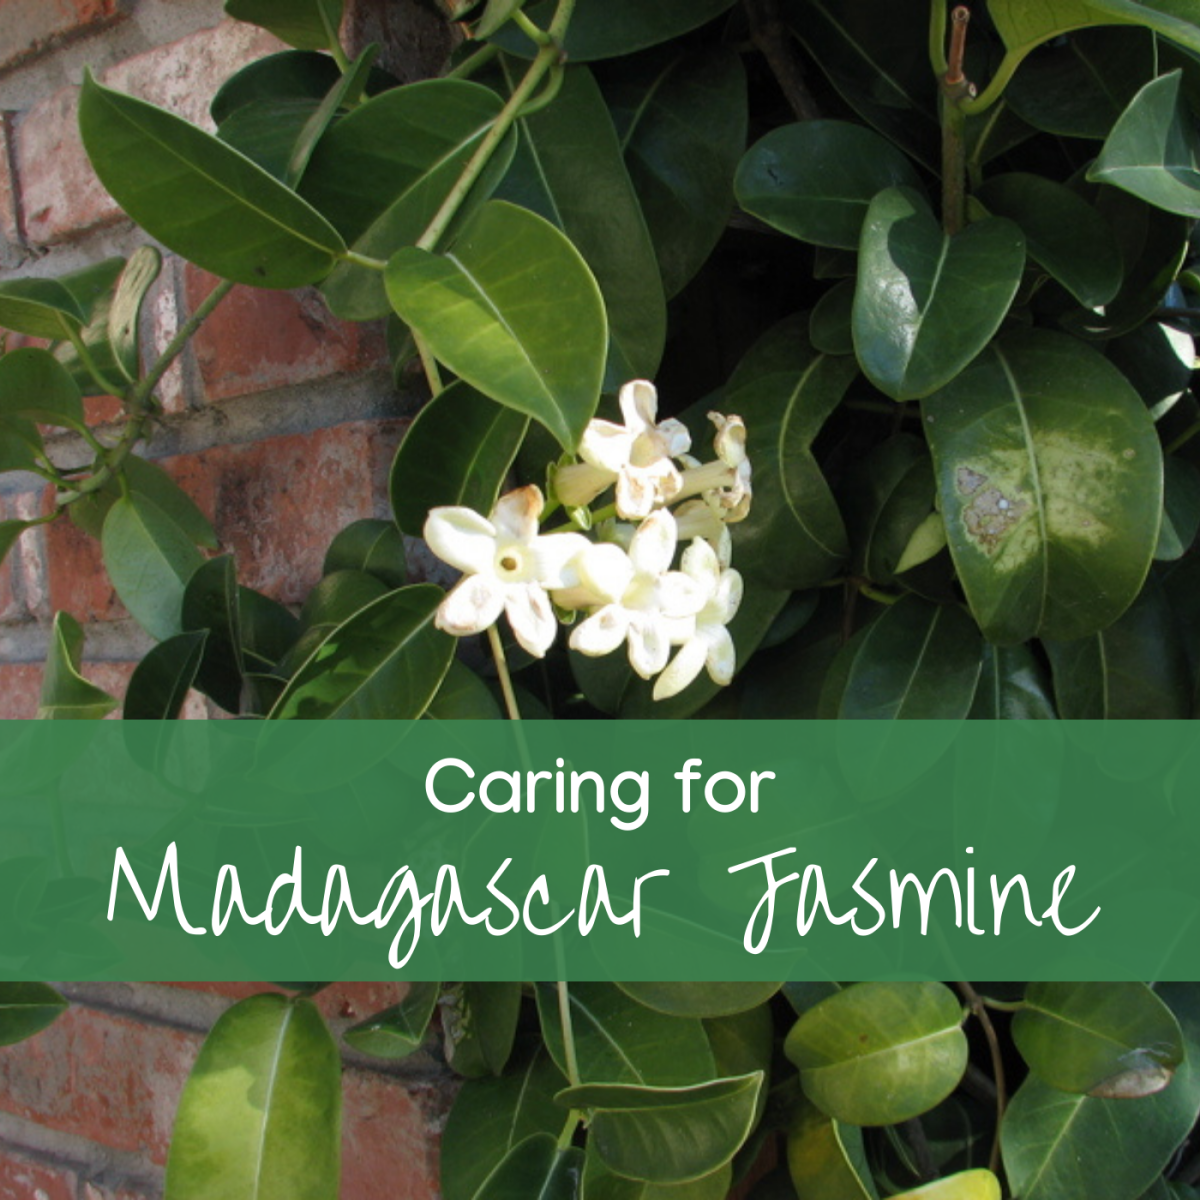 Madagascar Jasmine or wax flower is a heavily perfumed climber. The waxen flowers appear in groups or 'pips' along the stems.